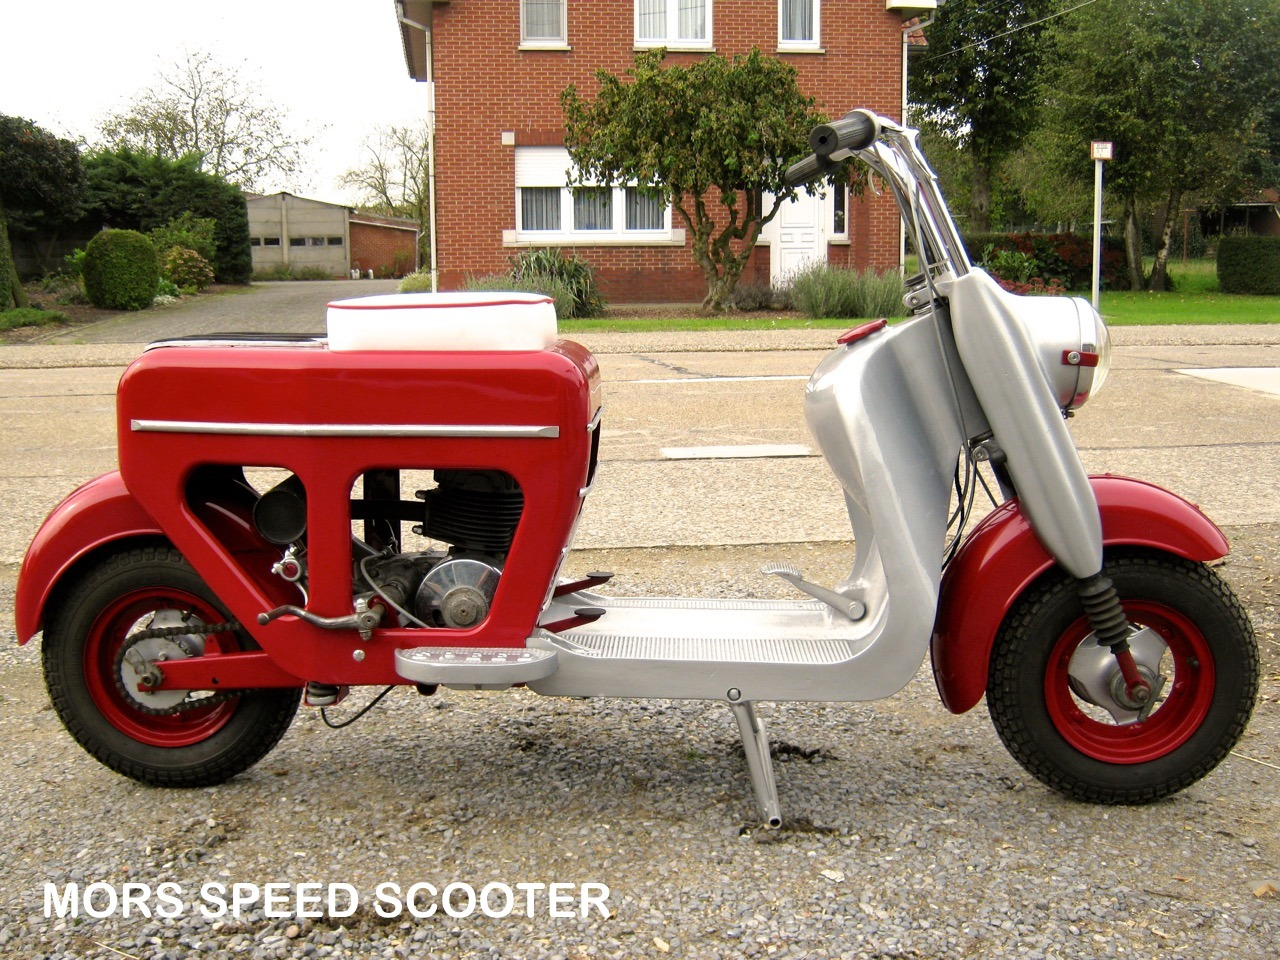 mors-speed-scooter